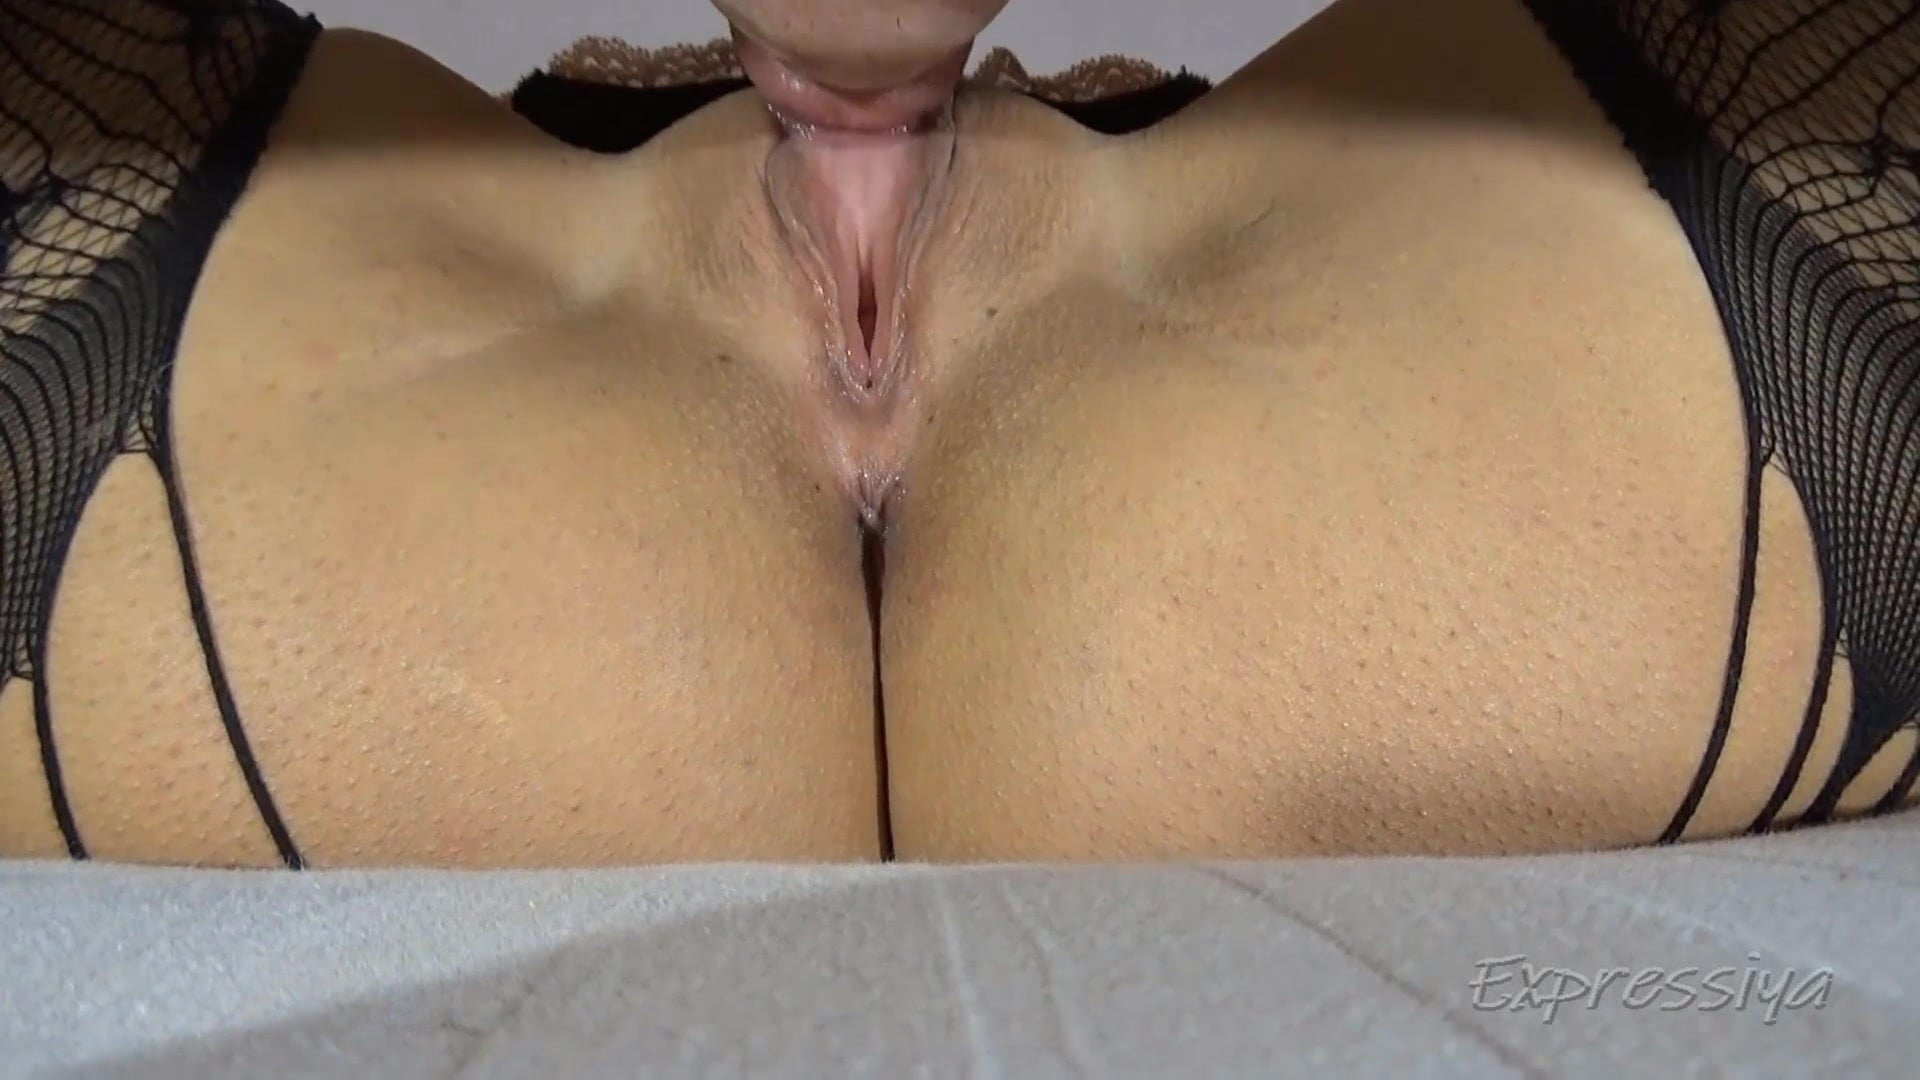 Pussy Getting Fucked Up Close